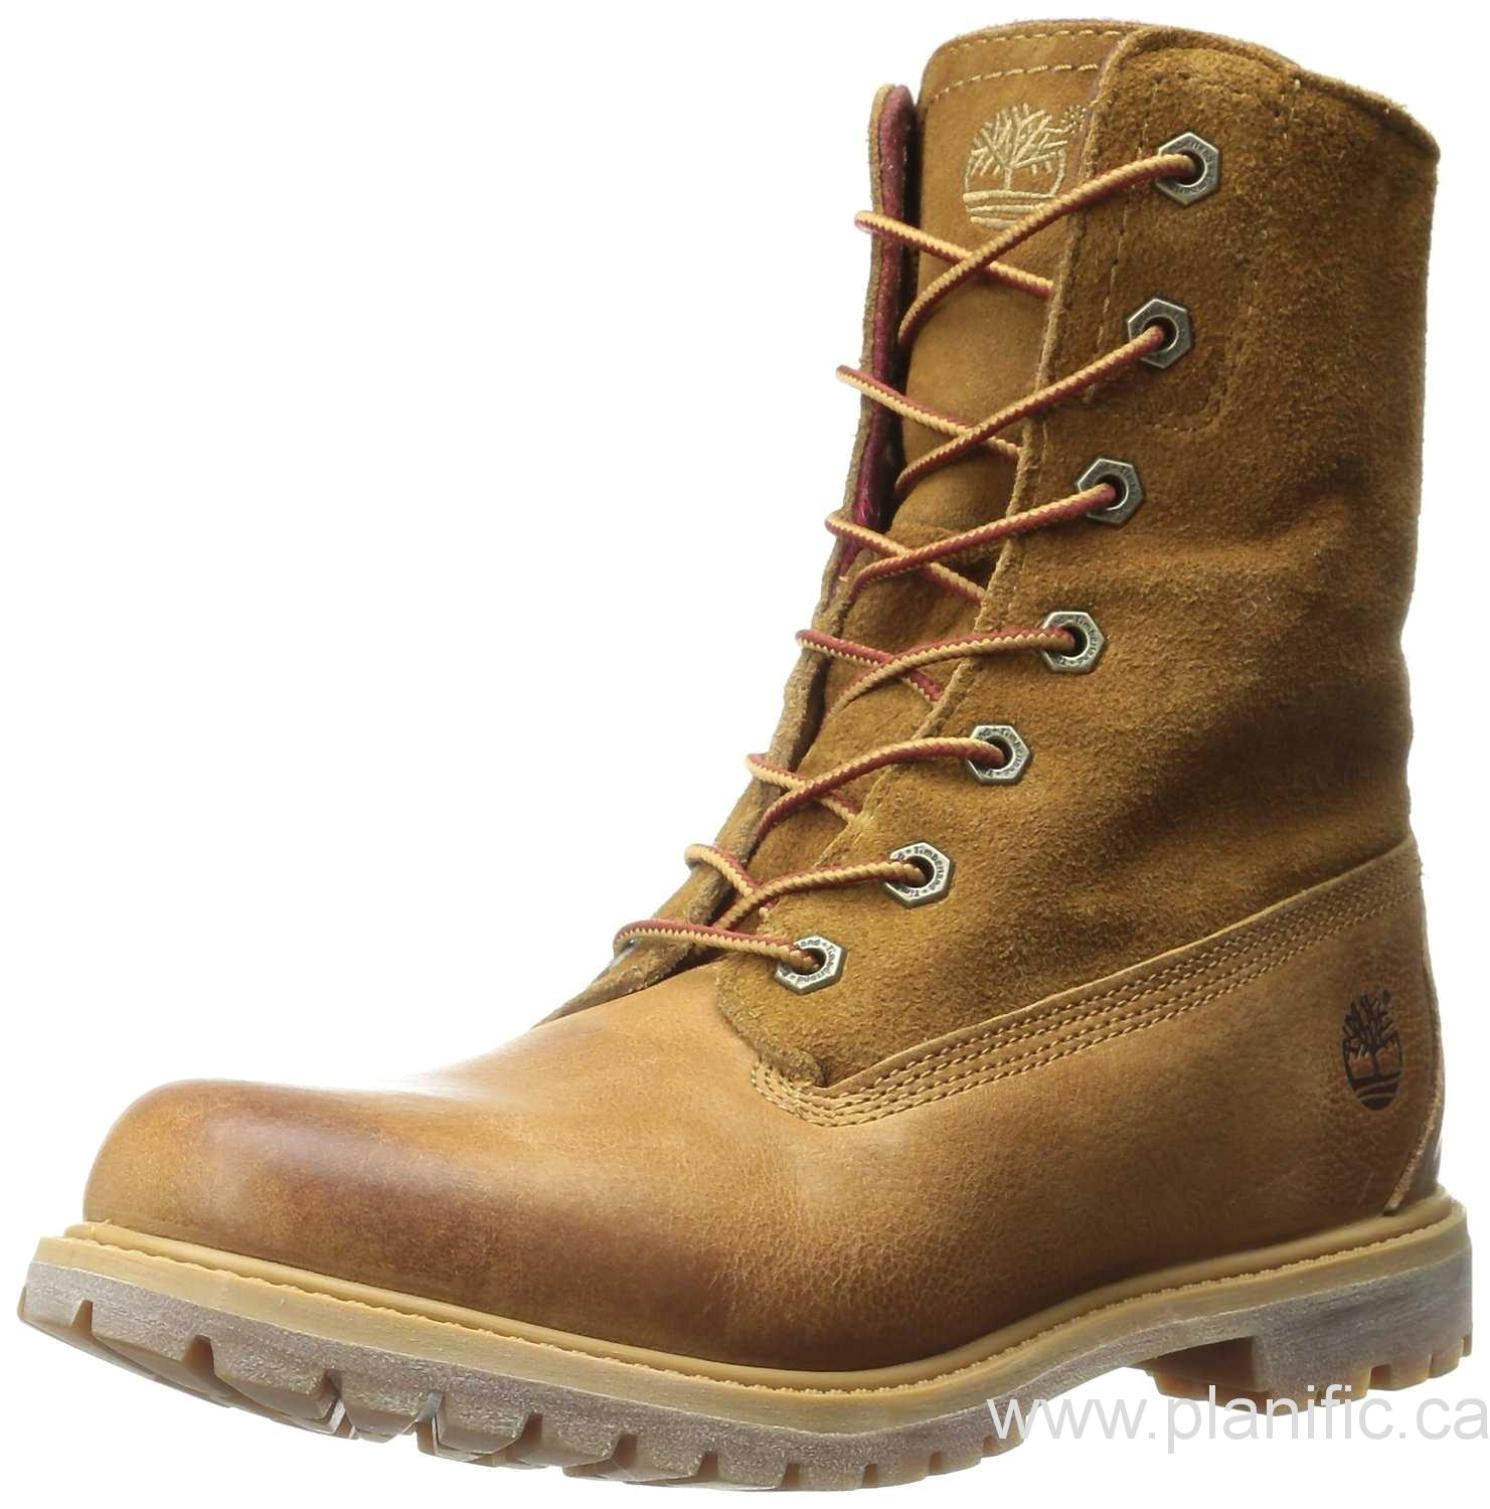 od566850344 canada timberland womens authentics fold down boot wheat woodlands red pendleton wool